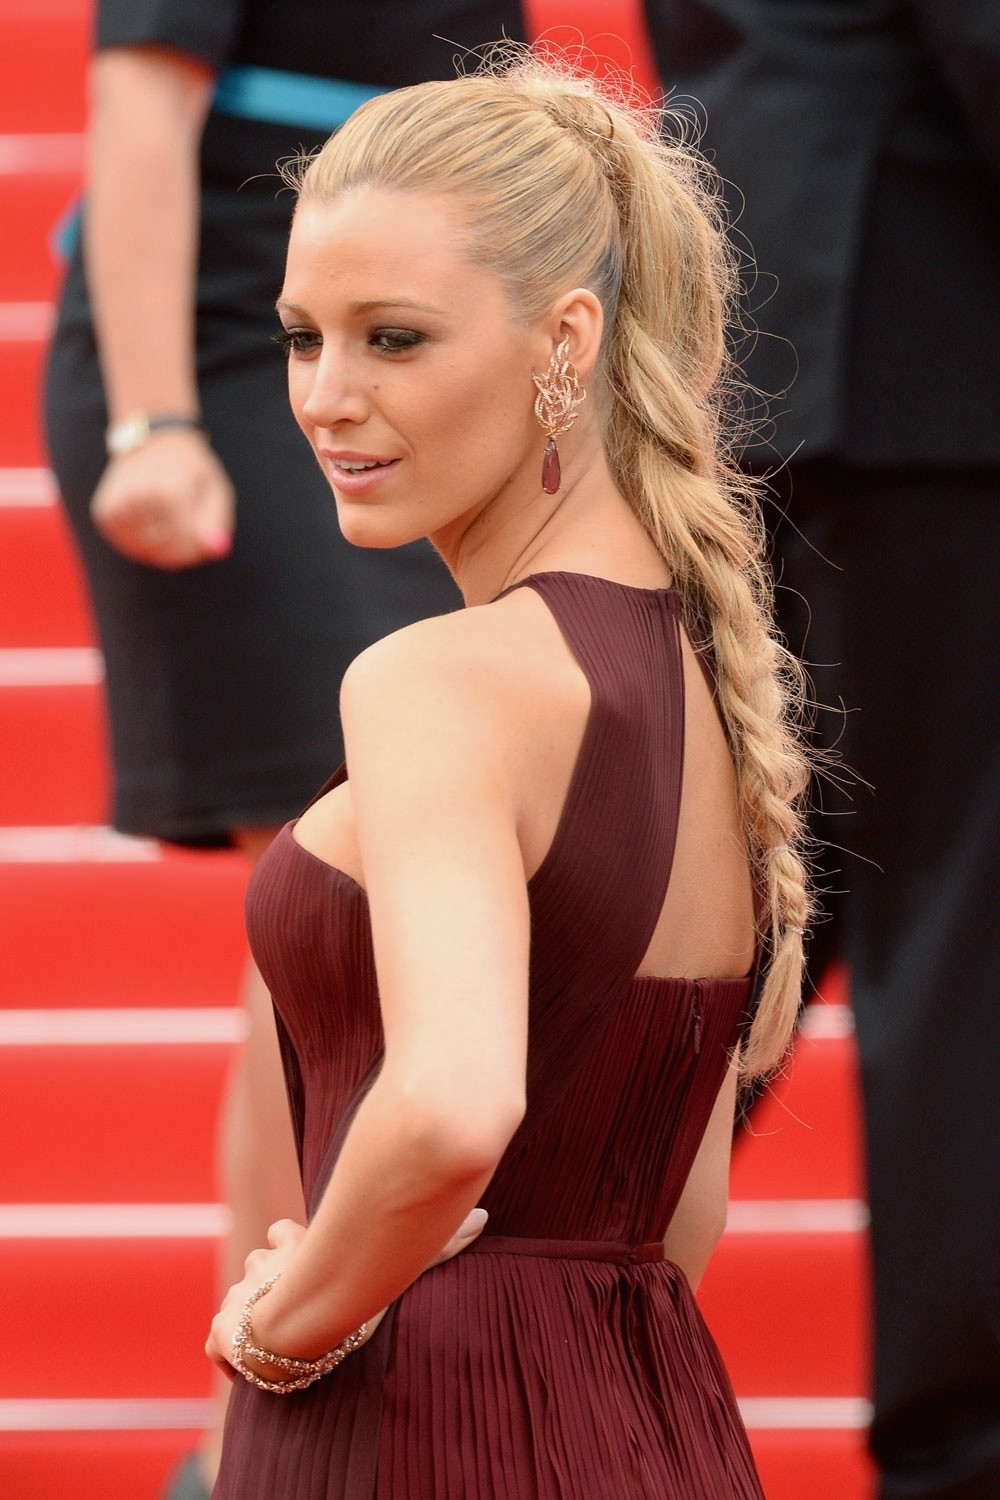 Braid Hairstyles : New Red Carpet Braid Hairstyles New Hairstyle On In Most Current Red Carpet Braided Hairstyles (View 3 of 15)